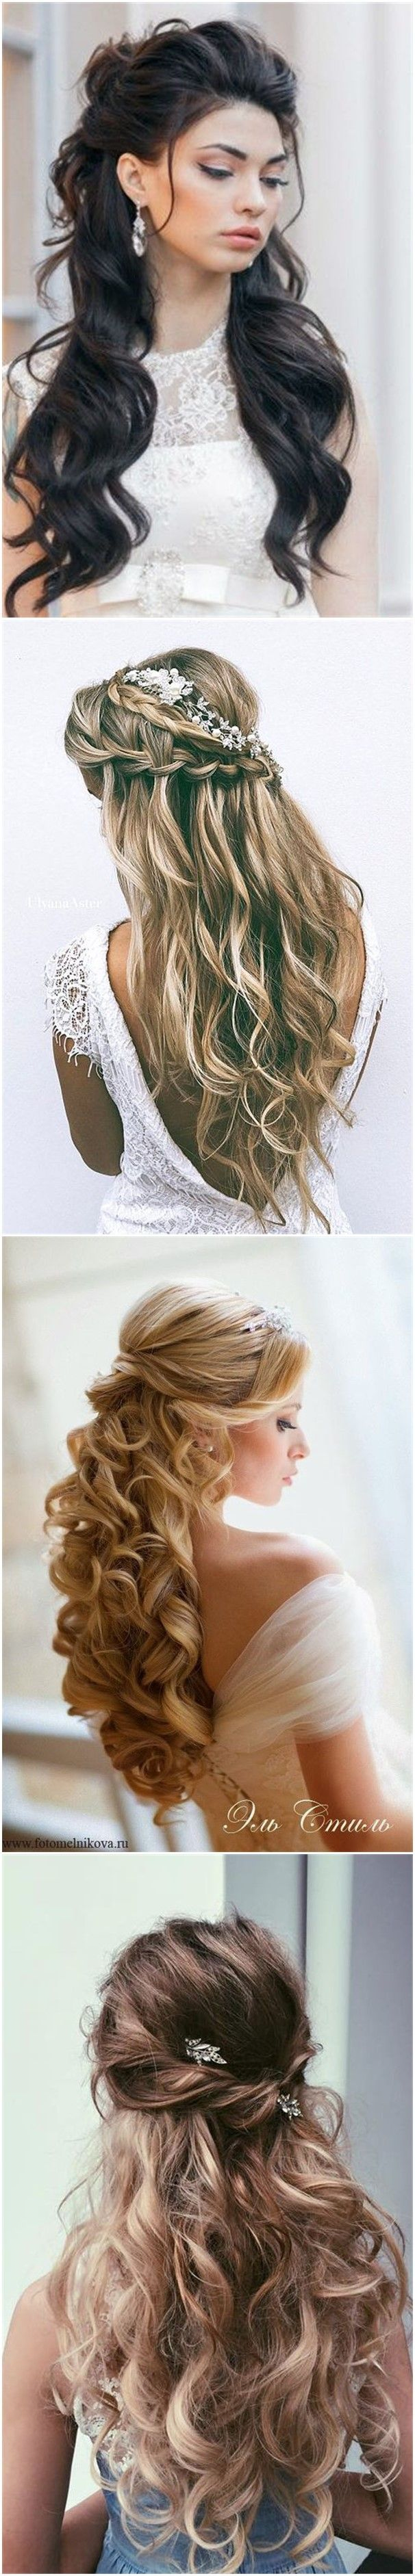 creative and unique wedding hairstyles for long hair wedding